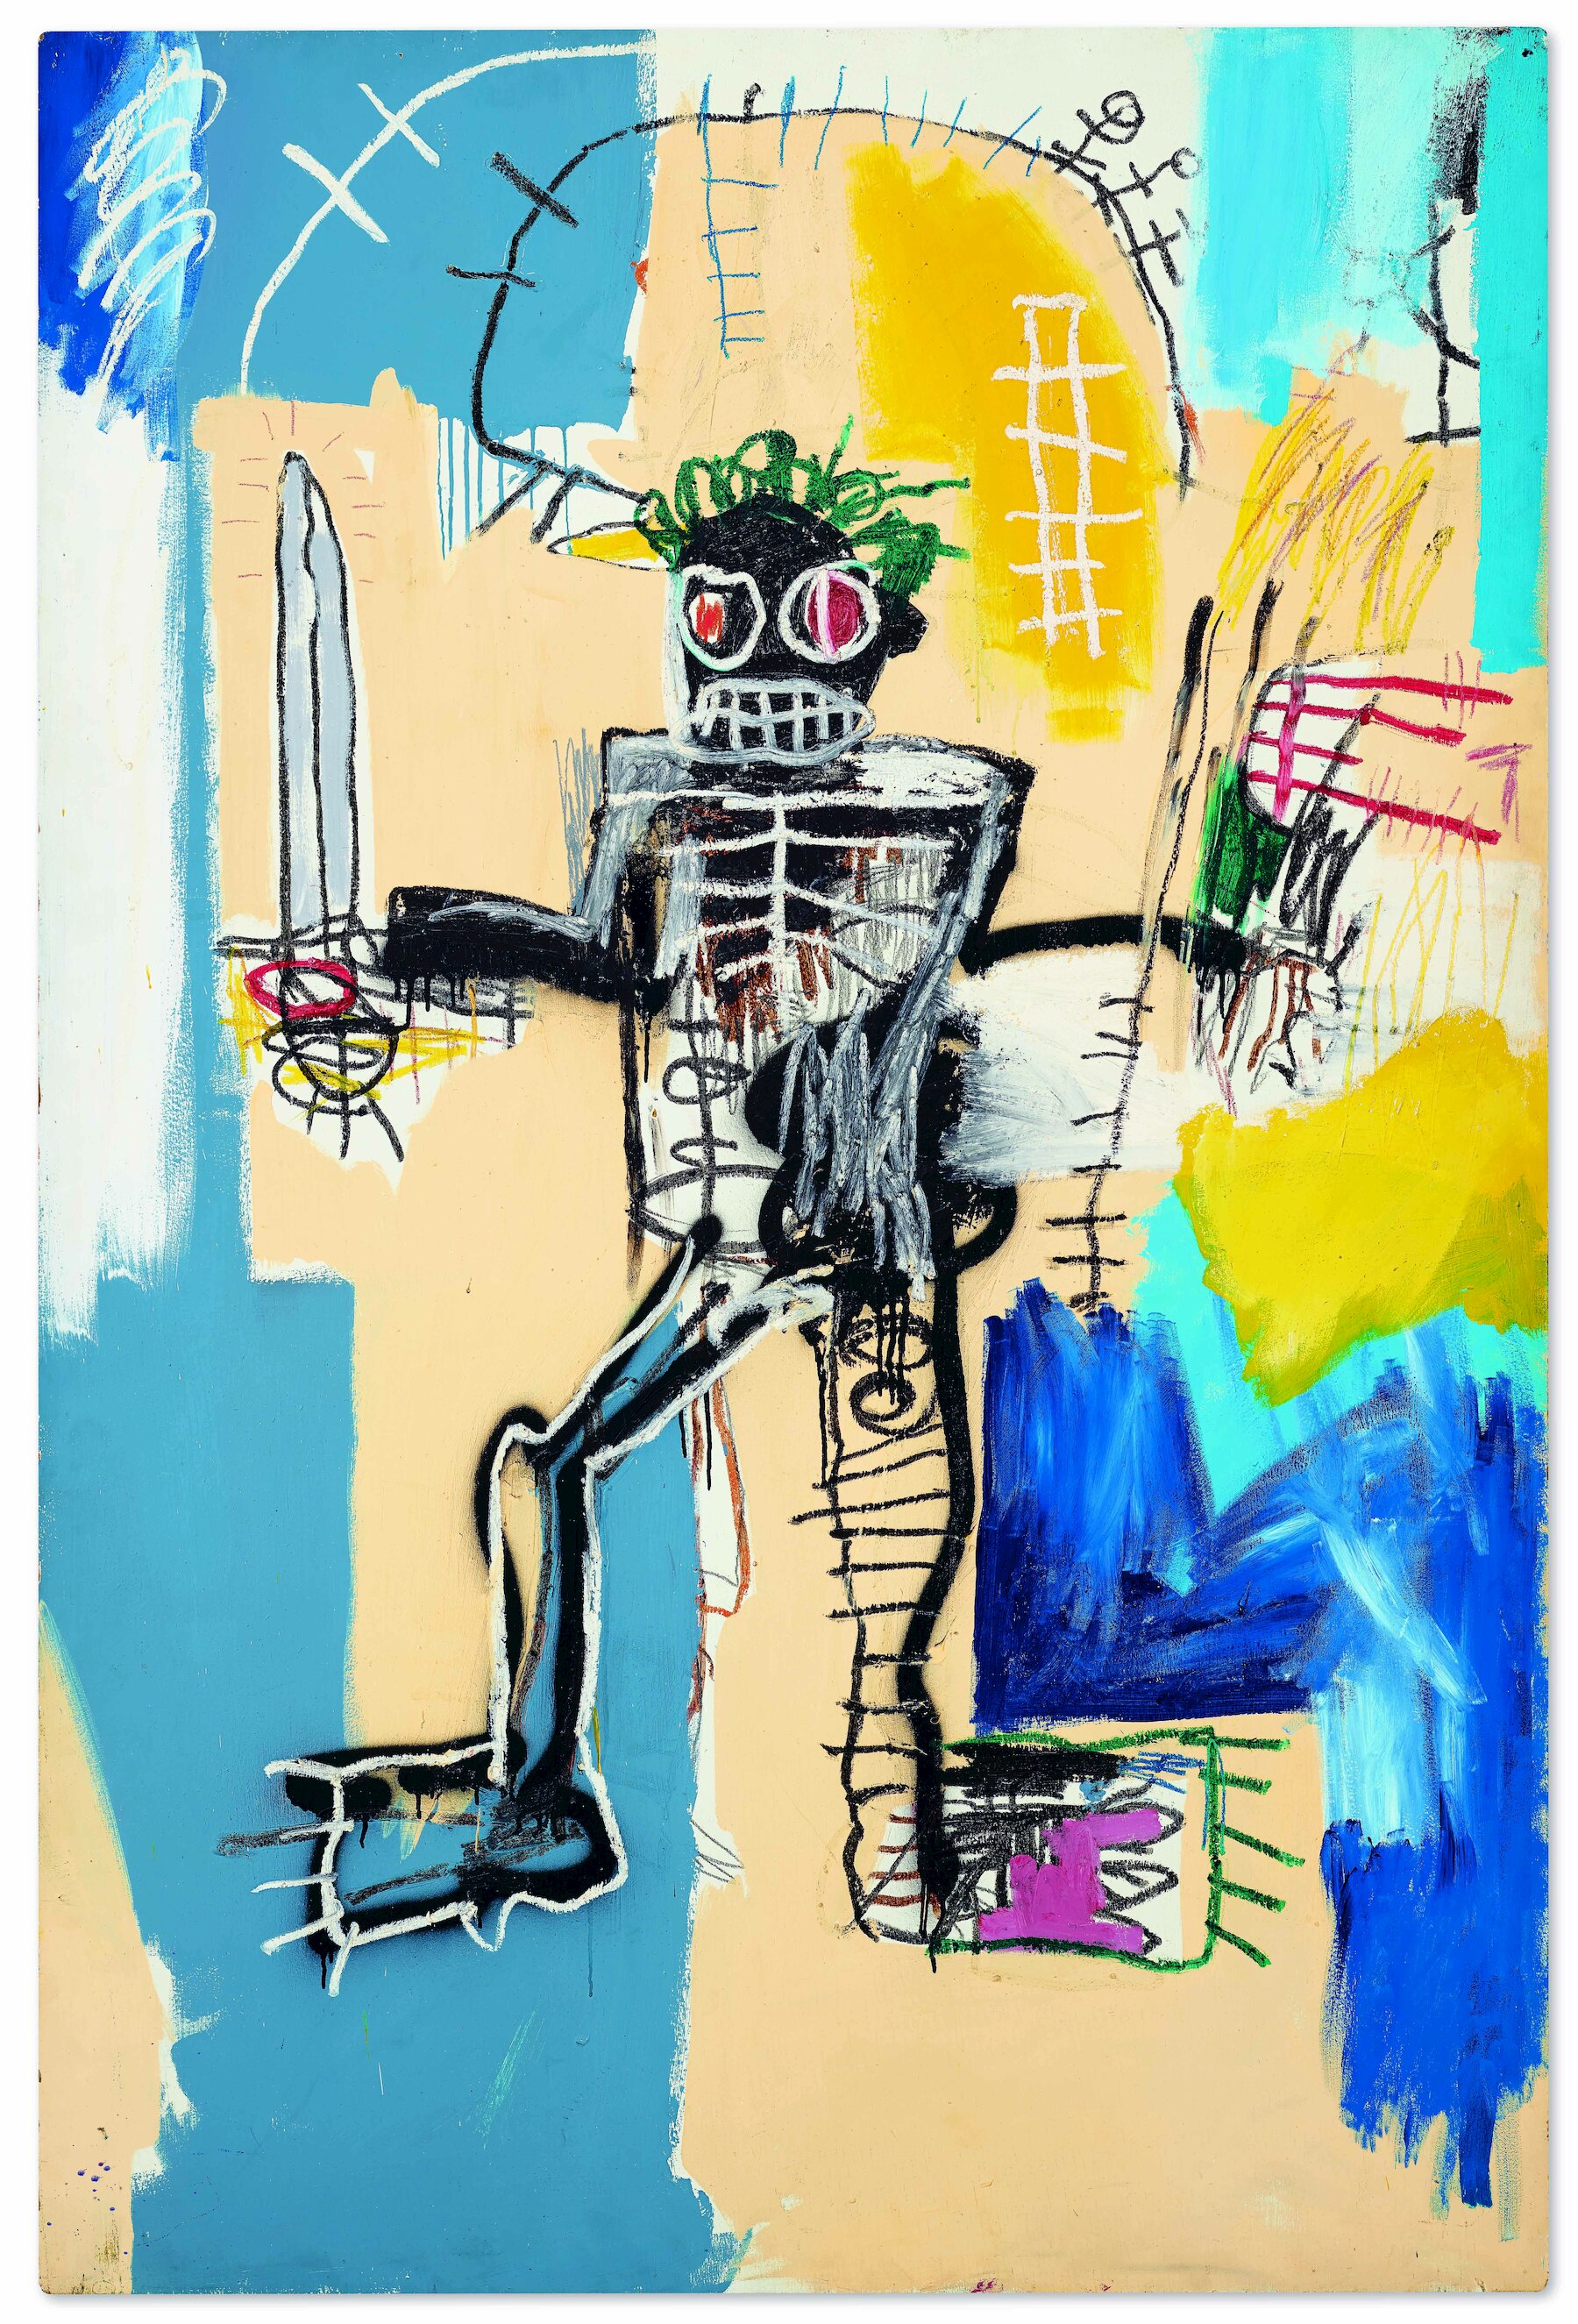 The Final Reich Pack A Punch : final, reich, punch, Basquiat, Sells, .9, Million, Christie's, Times